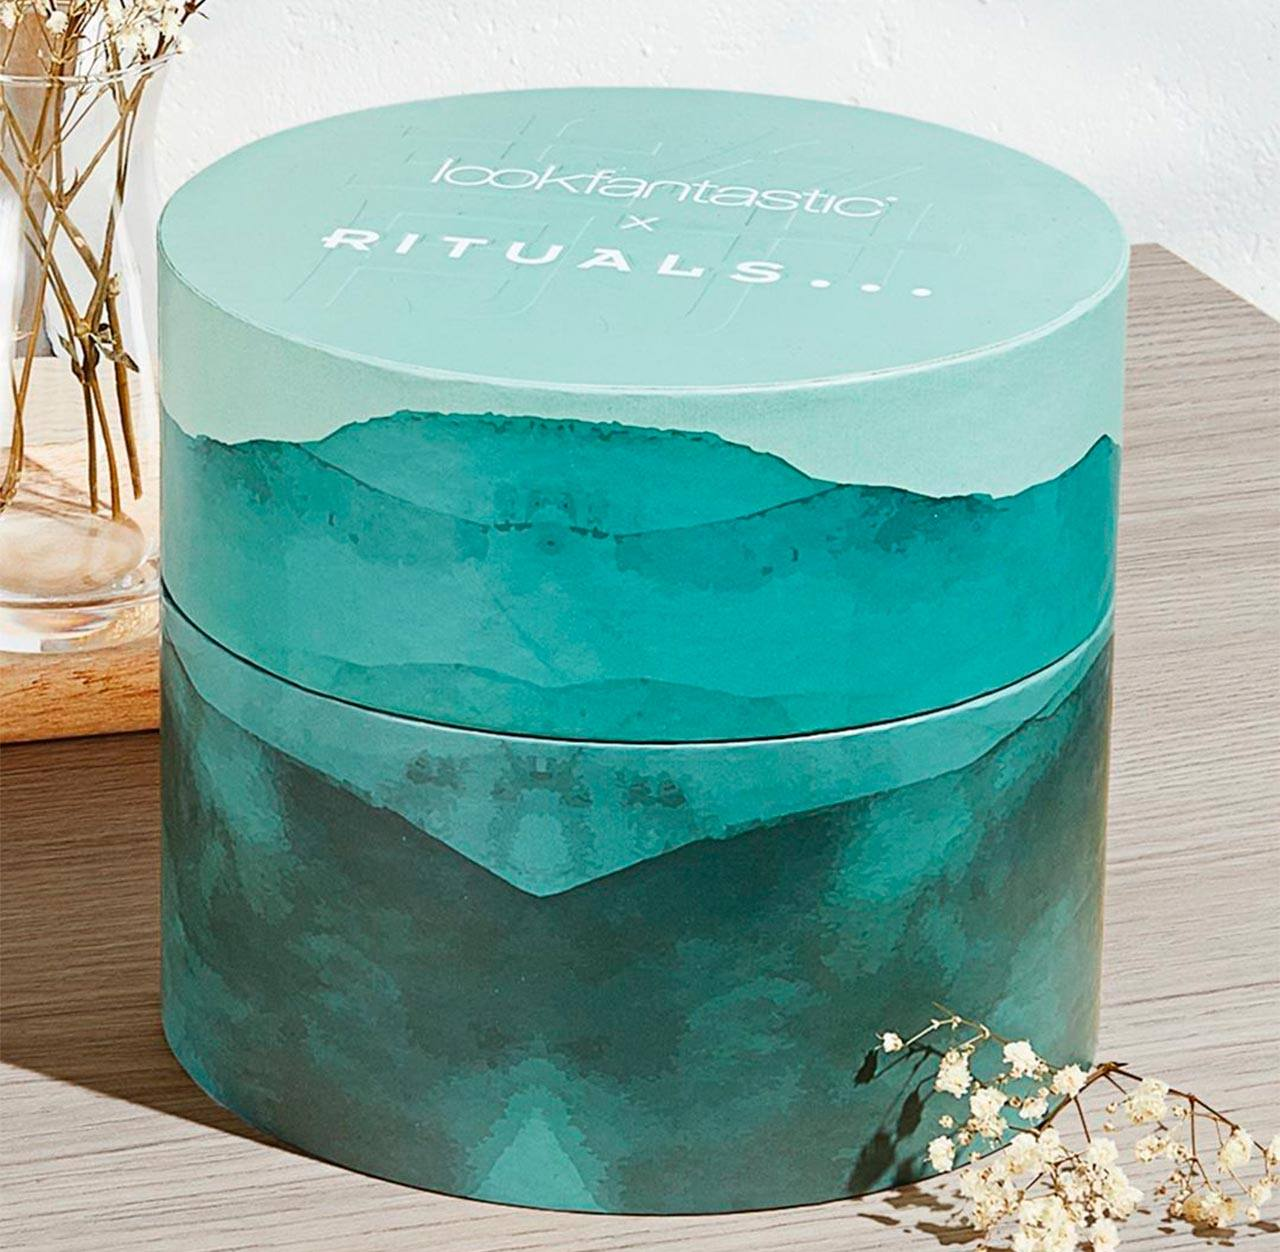 Lookfantastic x Rituals Limited Edition Beauty Box